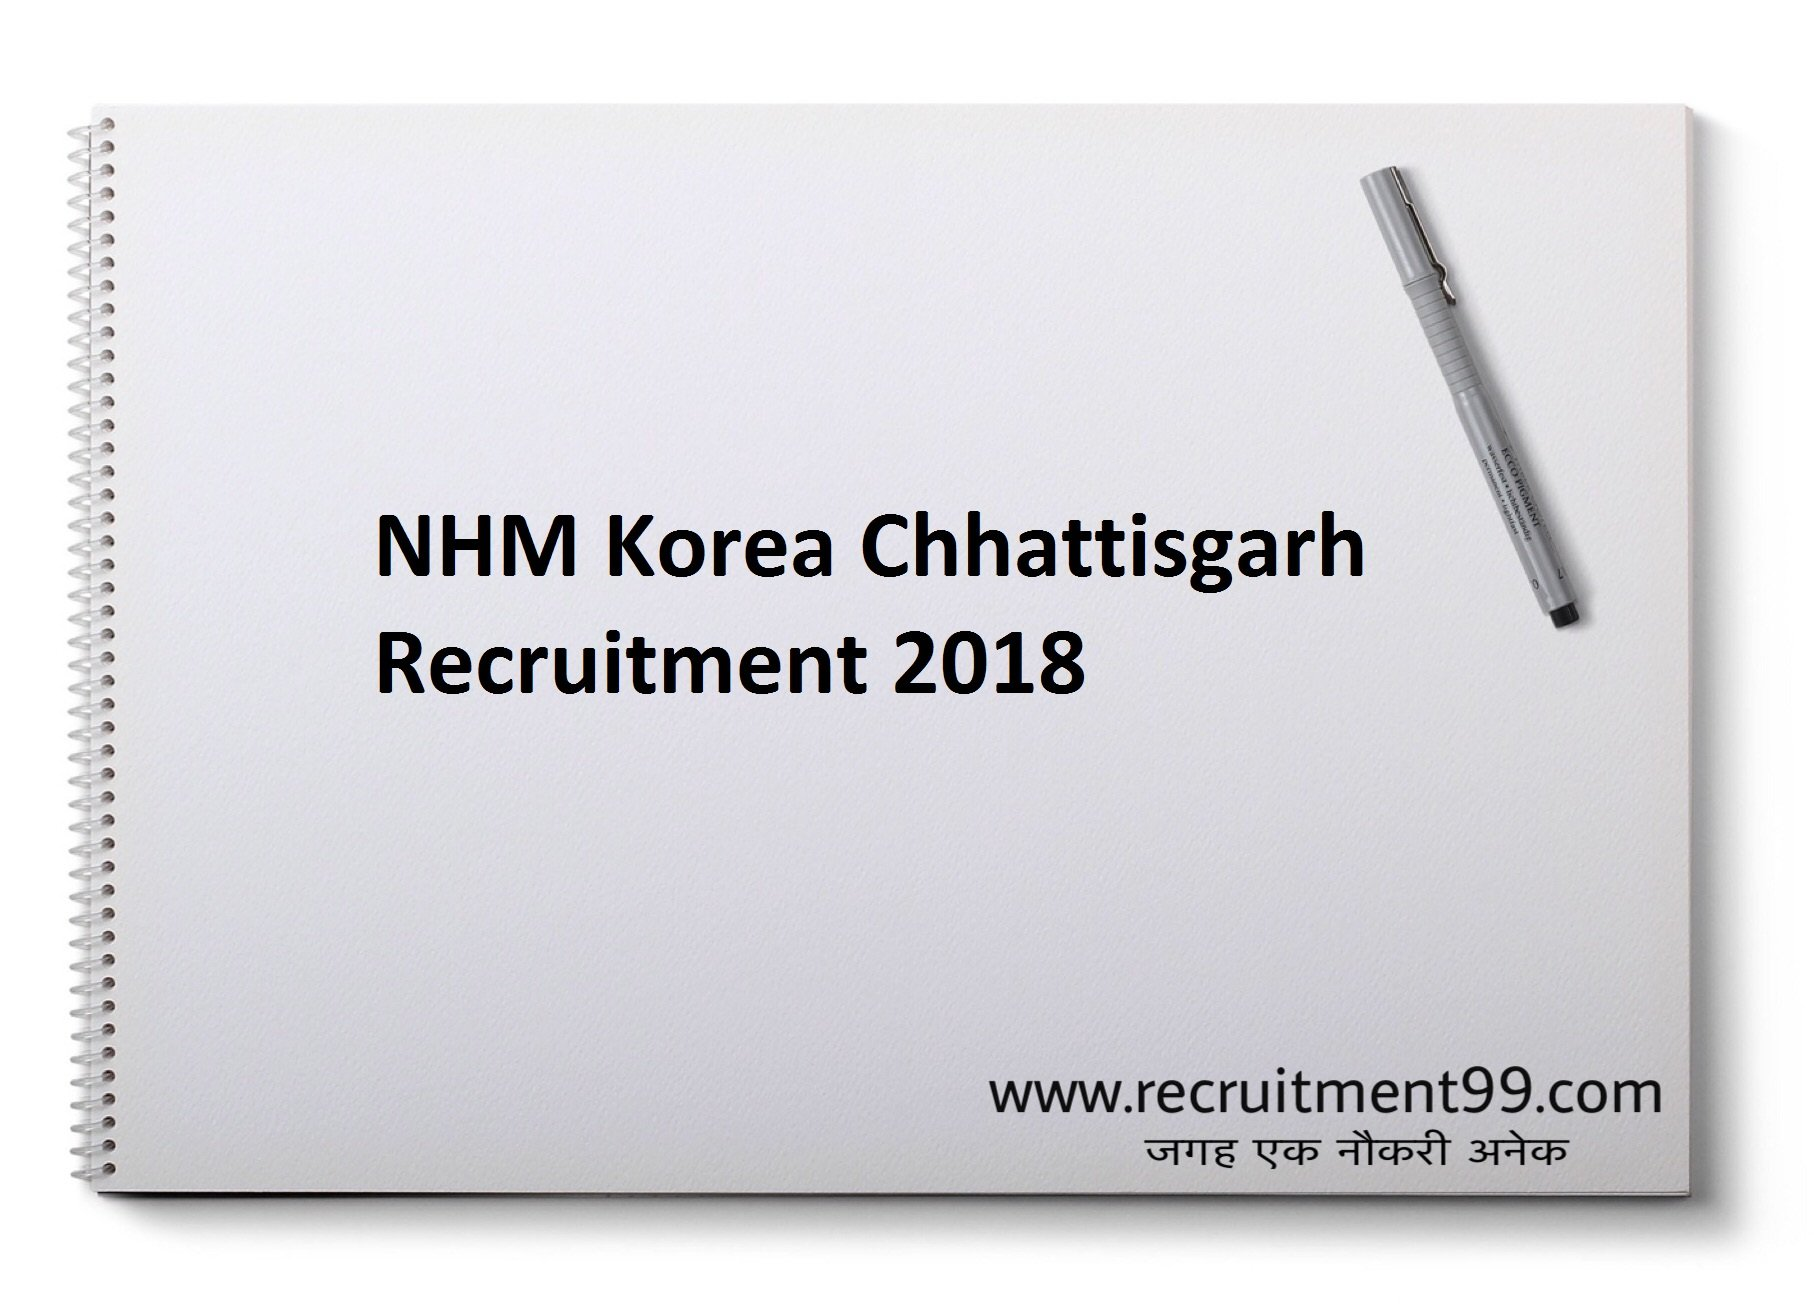 NHM Korea Chhattisgarh Medical Officer Lab Technician ANM Recruitment Admit Card Result 2018